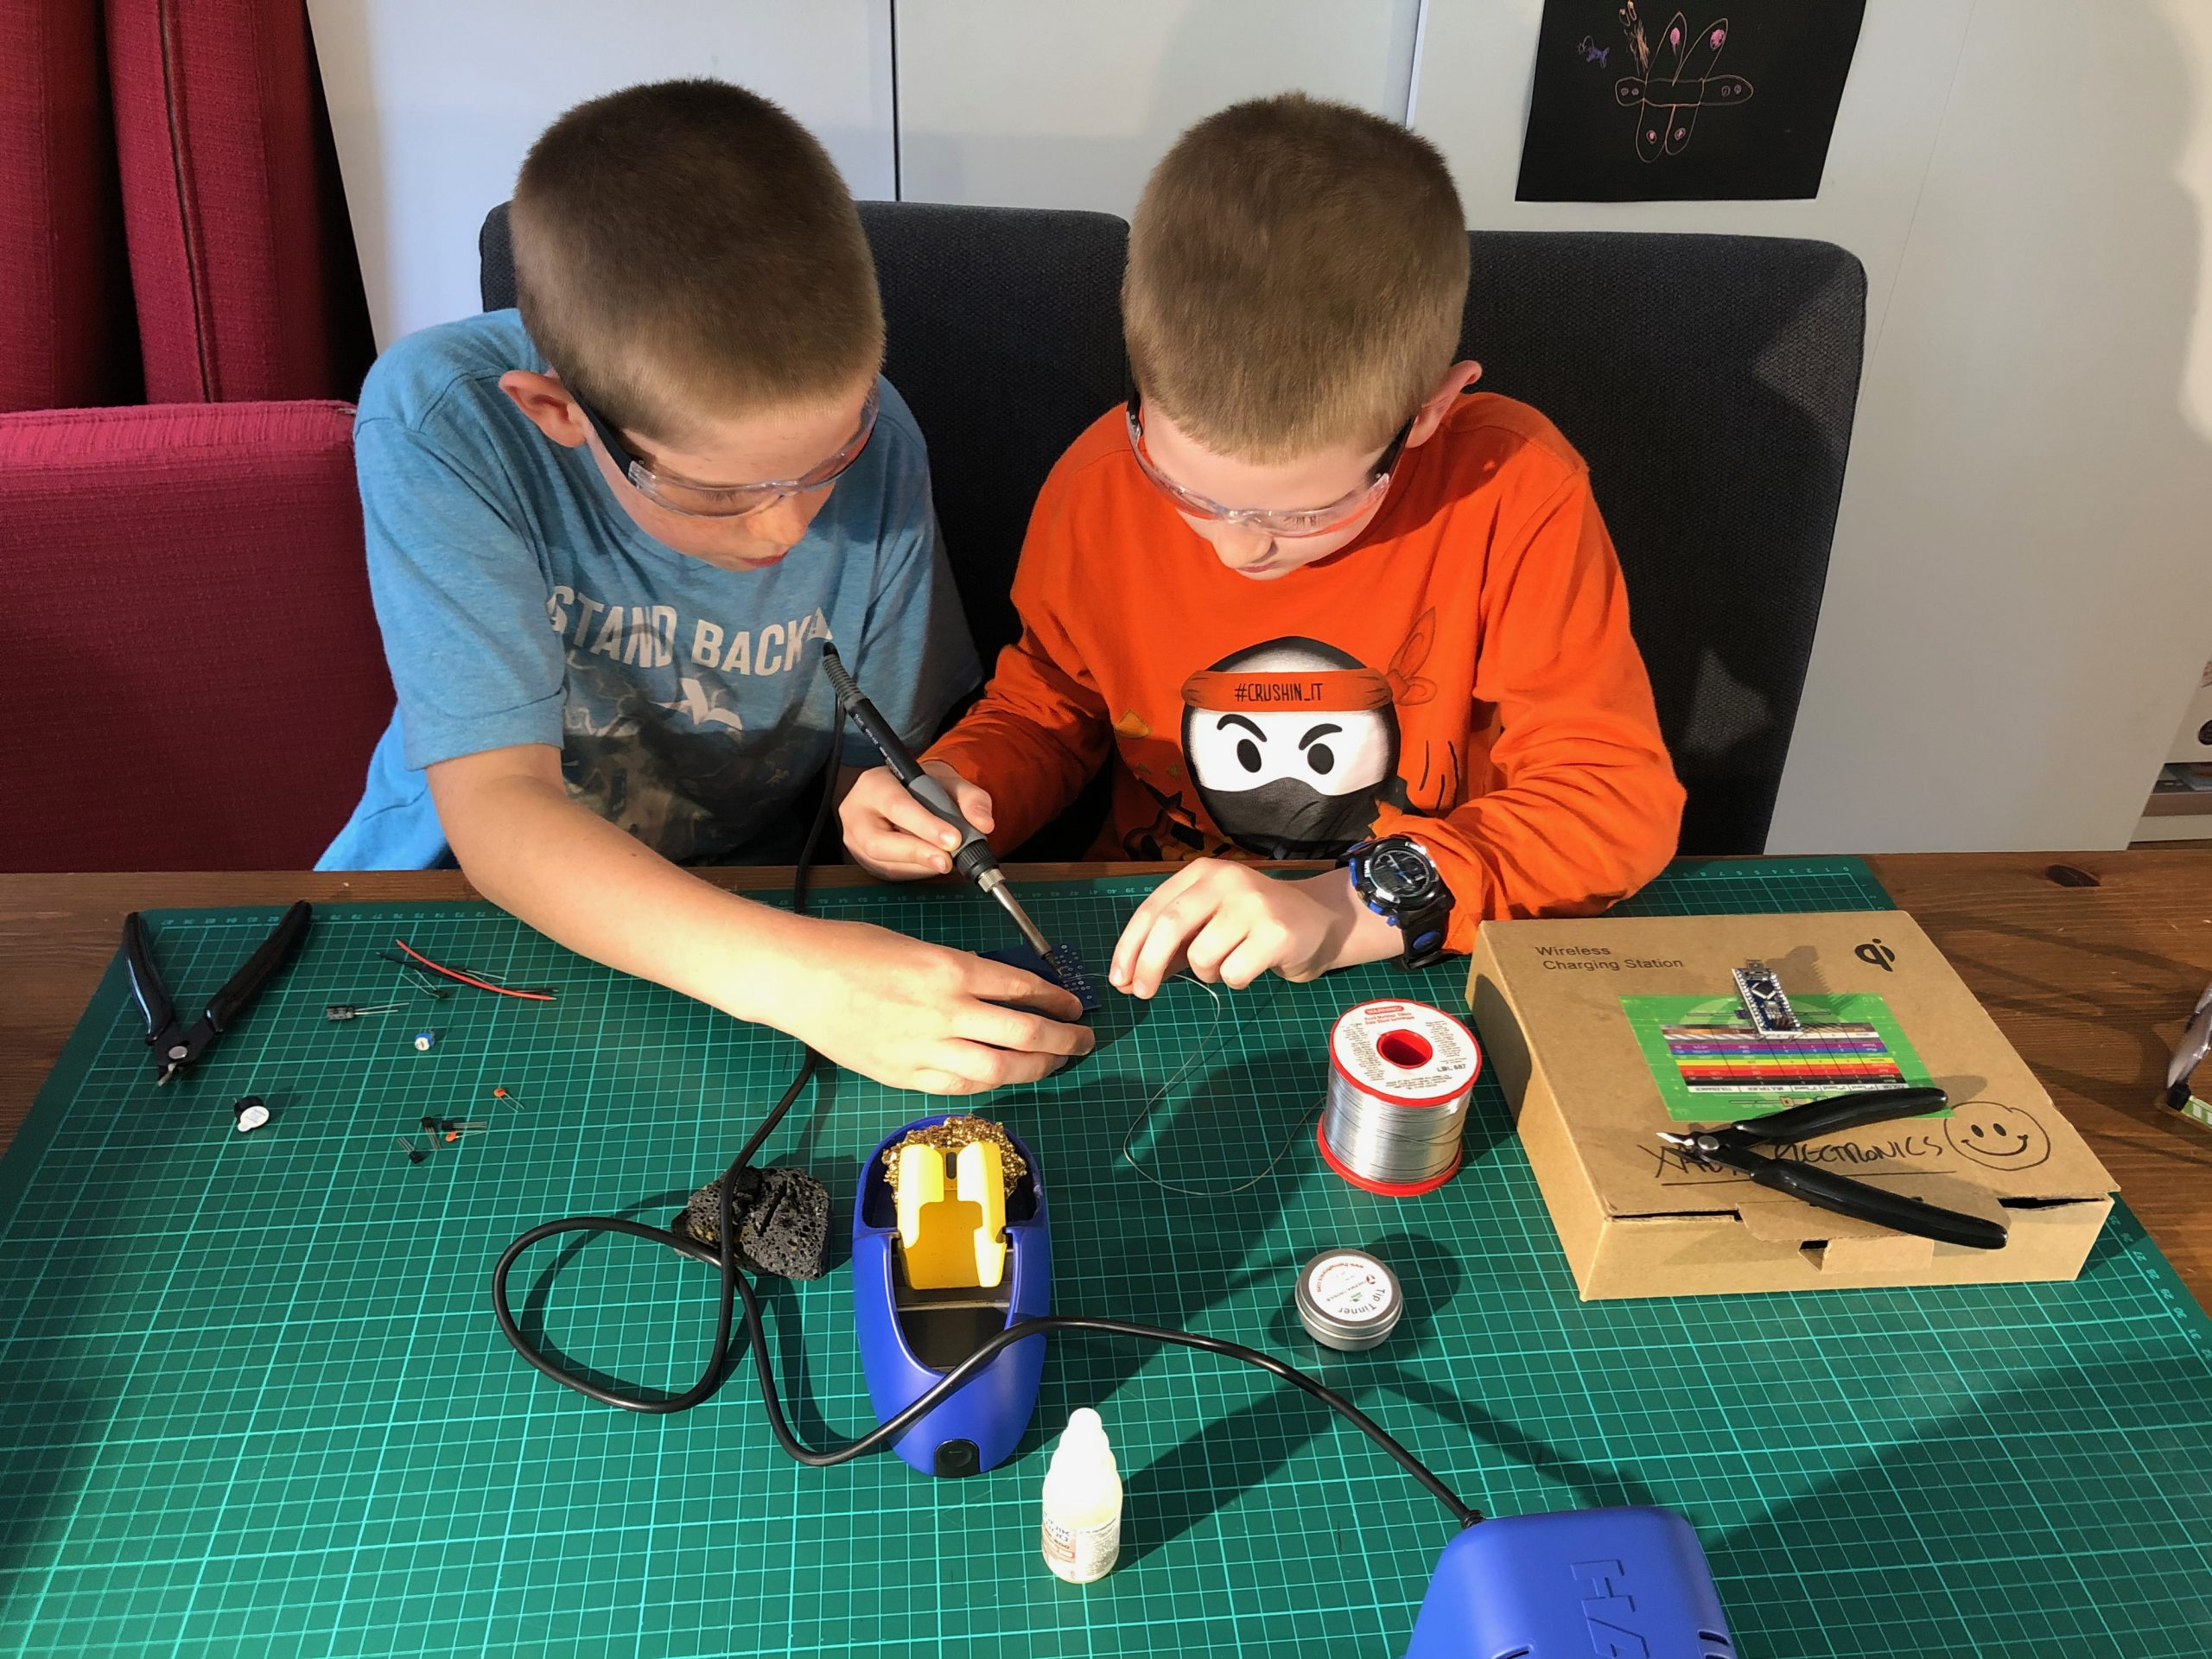 brothers soldering together